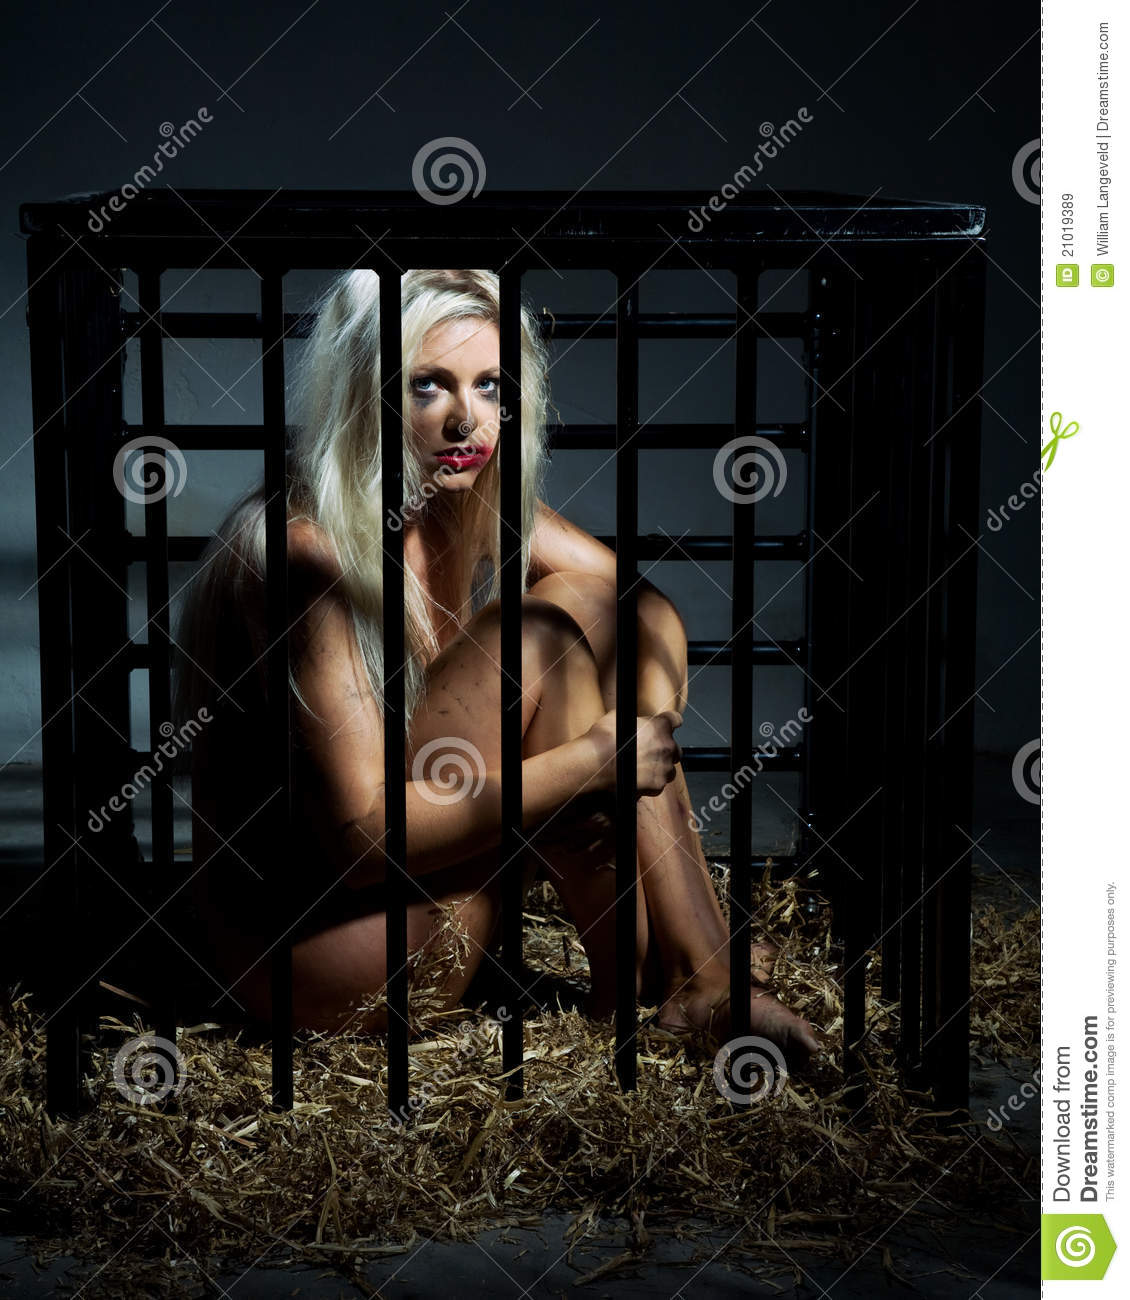 Photos nude females caged